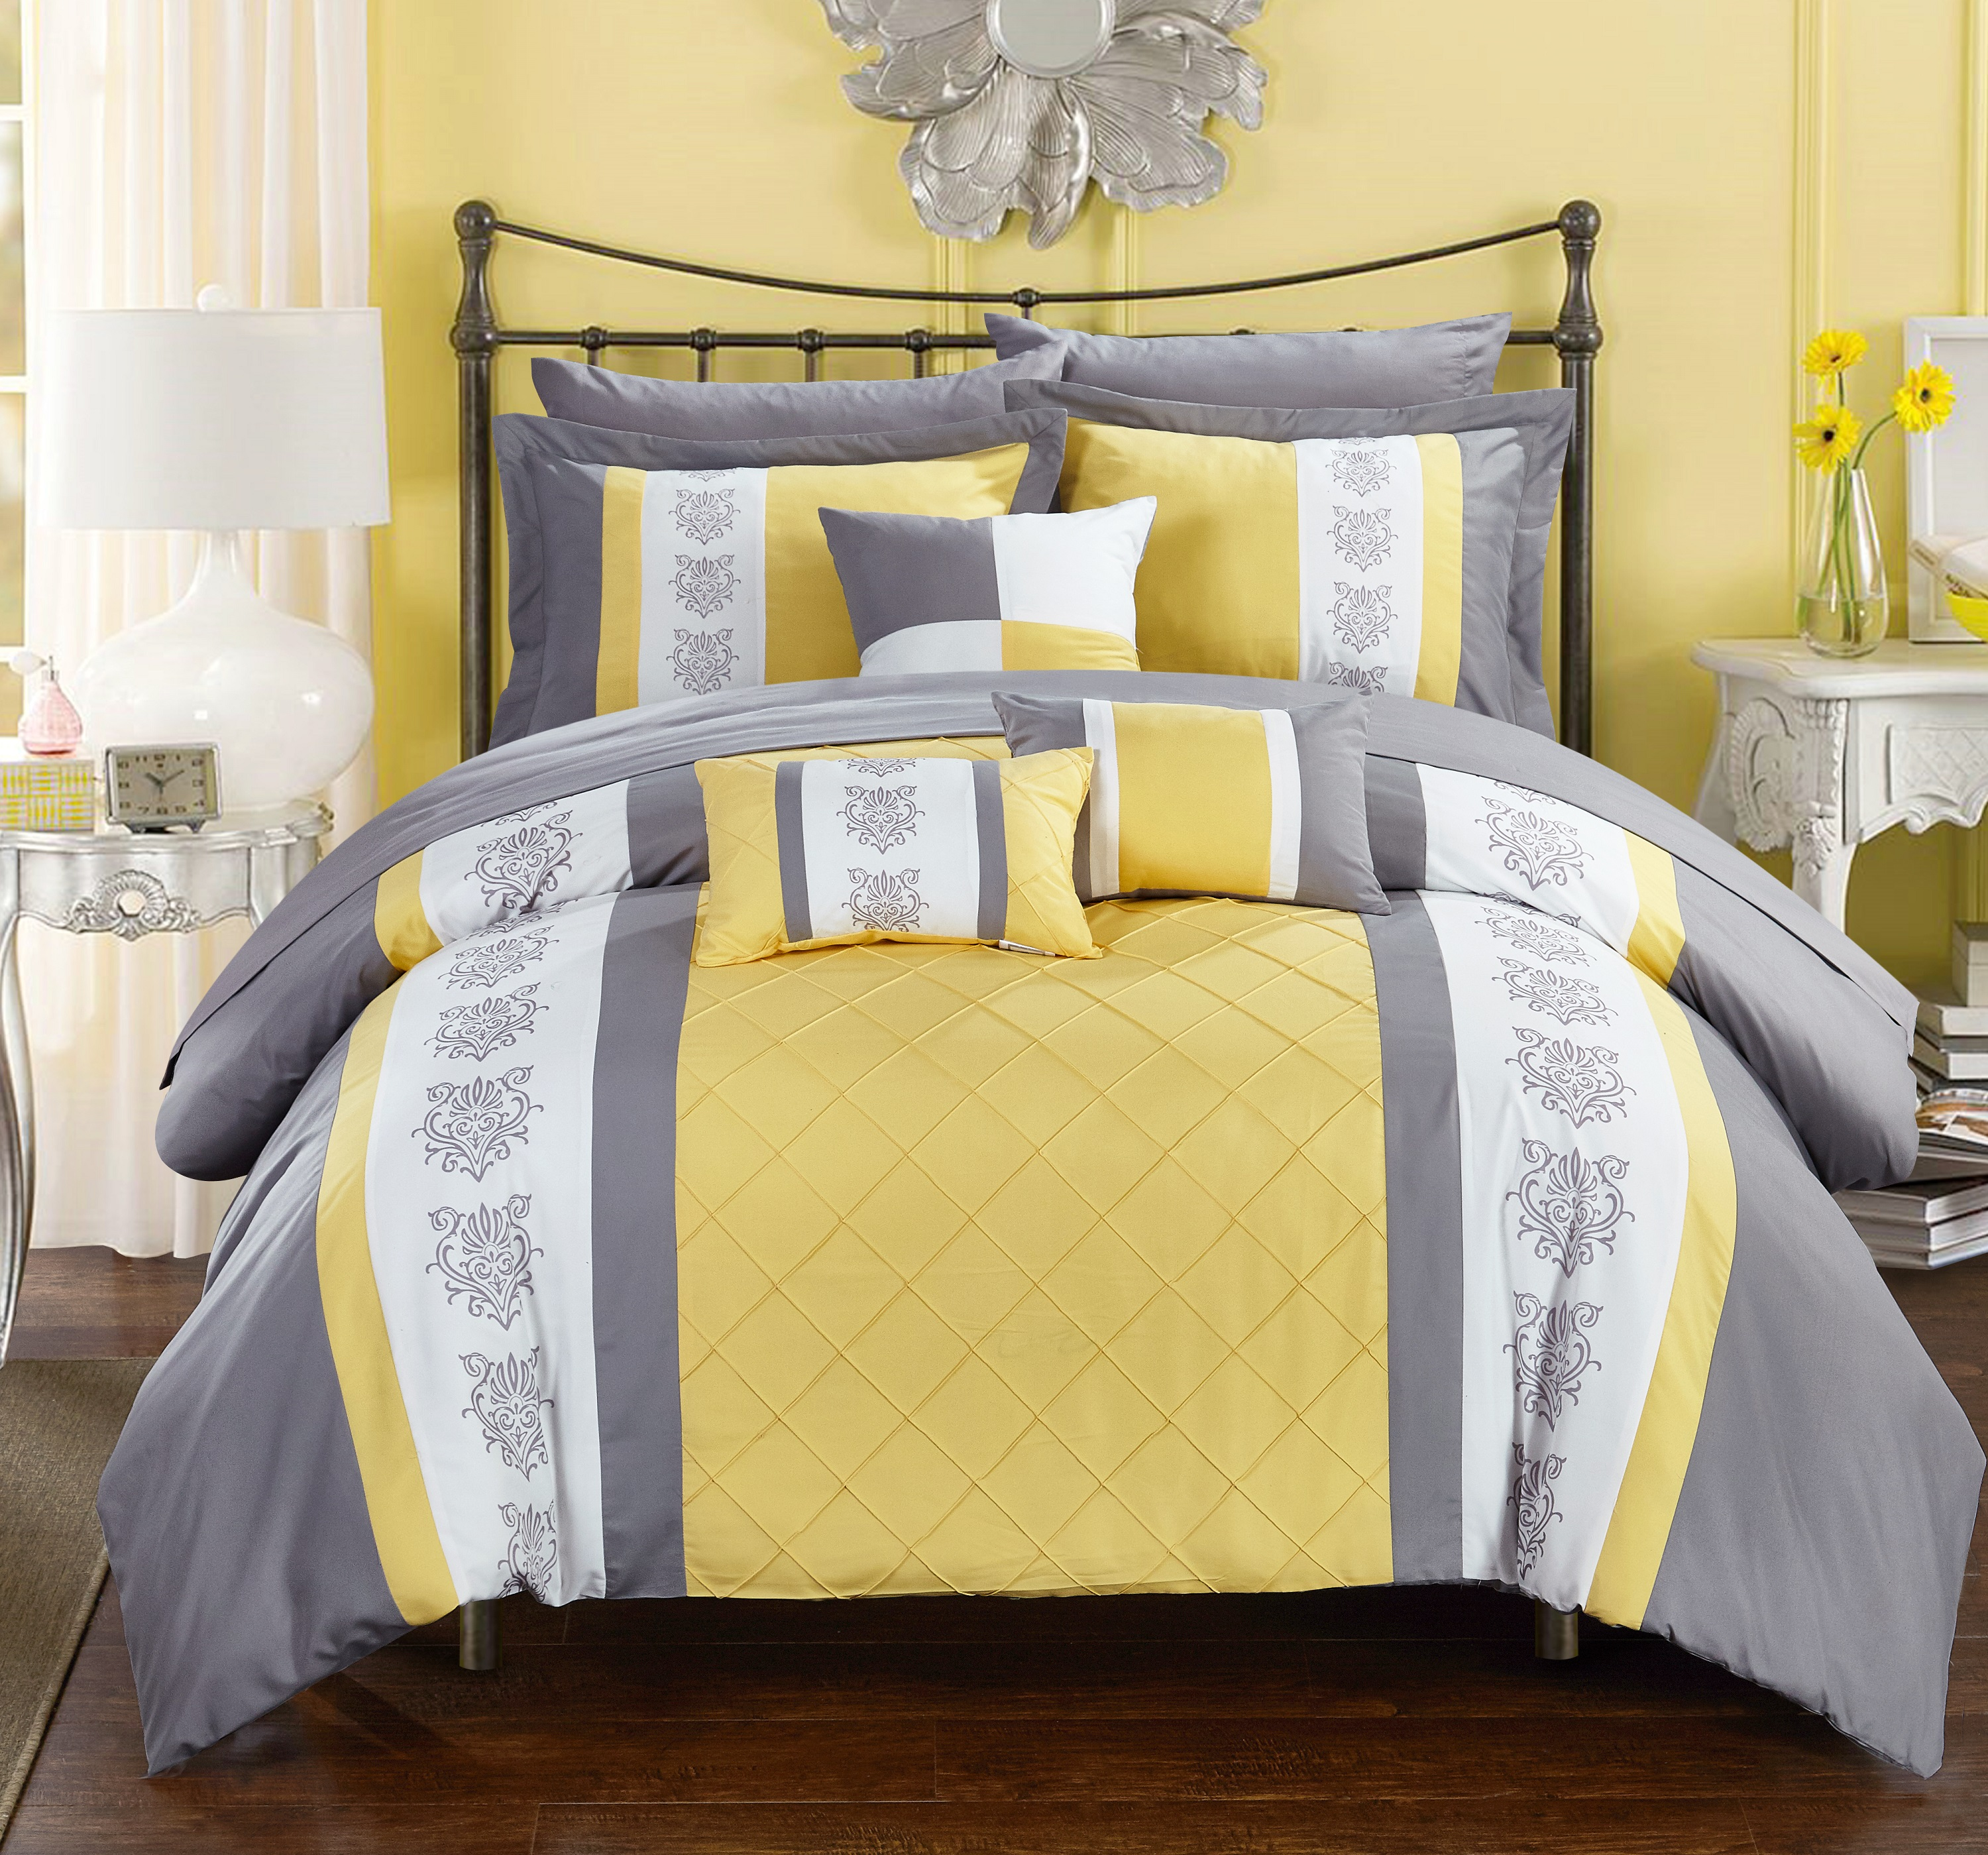 Chic Home 10-Piece Dalton Pin tuck-Pieced Color Block Embroidery Queen Bed In a Bag Comforter Set Yellow With sheet set